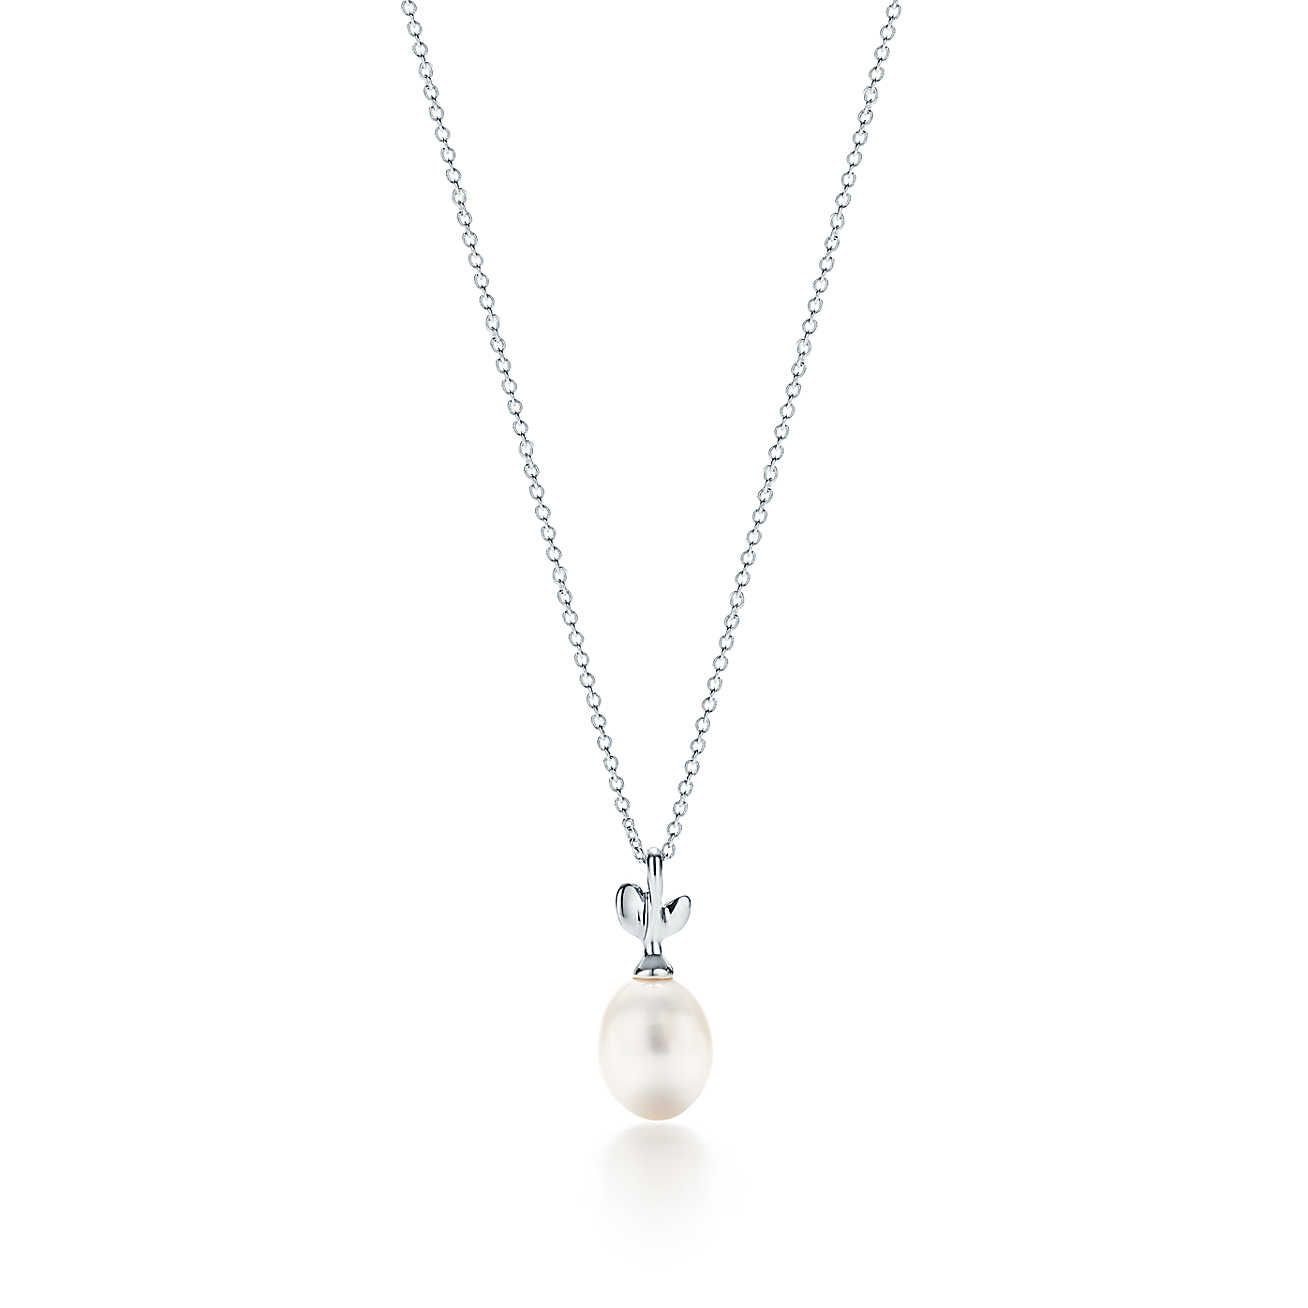 2b993e23eea03c Paloma Picasso®:Olive Leaf Pearl Pendant/ I personally own this piece and  it's stunning to look at!